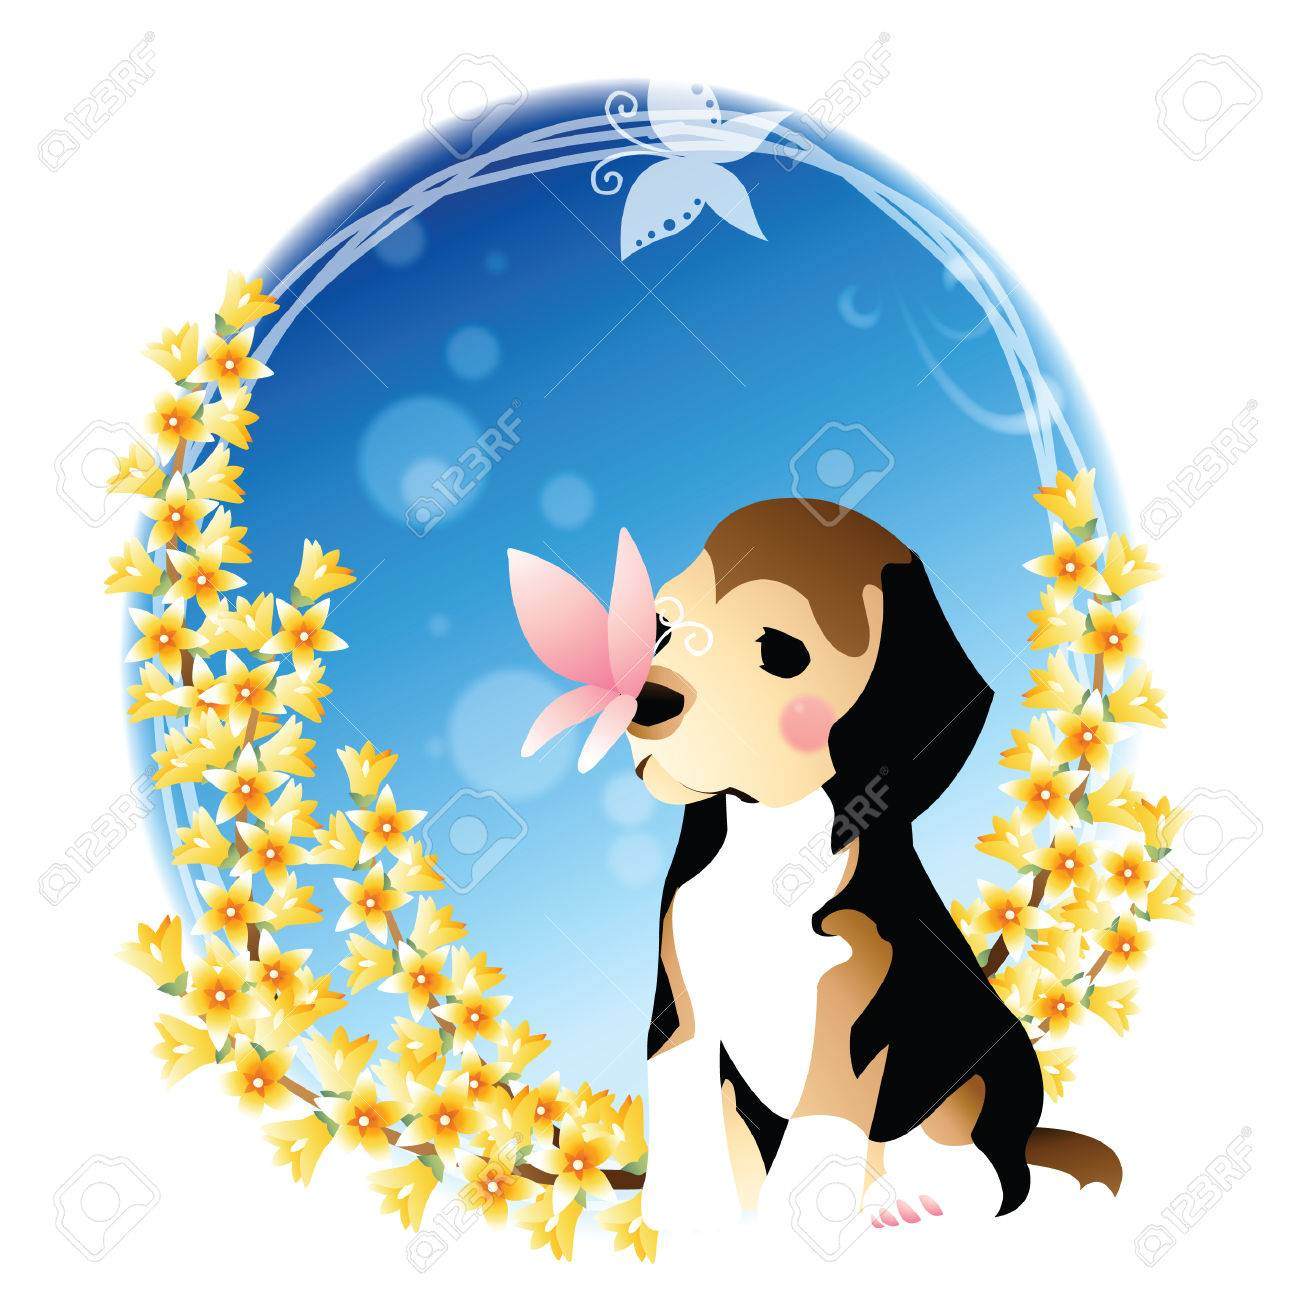 Butterfly On Dog S Nose Royalty Free Cliparts Vectors And Stock Illustration Image 52794659